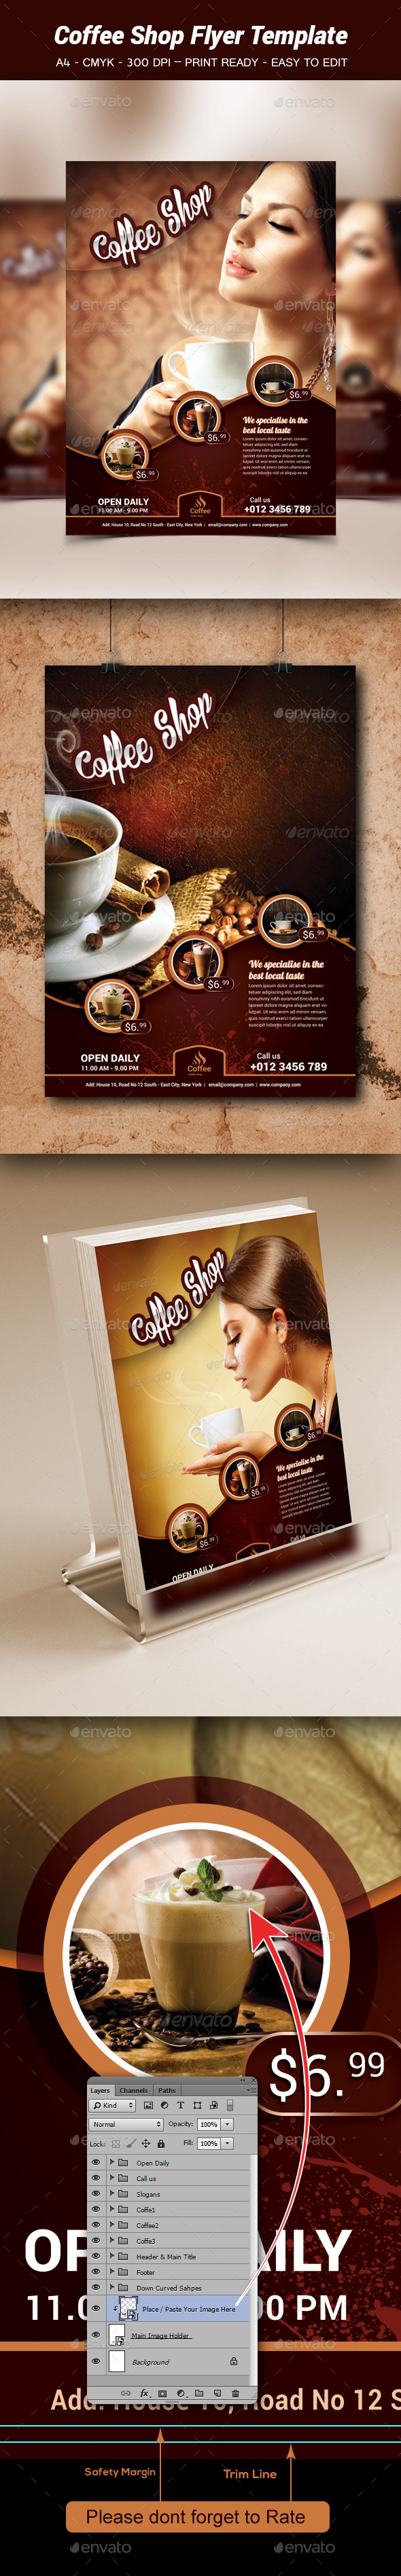 Coffe Shop Flyer Template - Flyers Print Templates